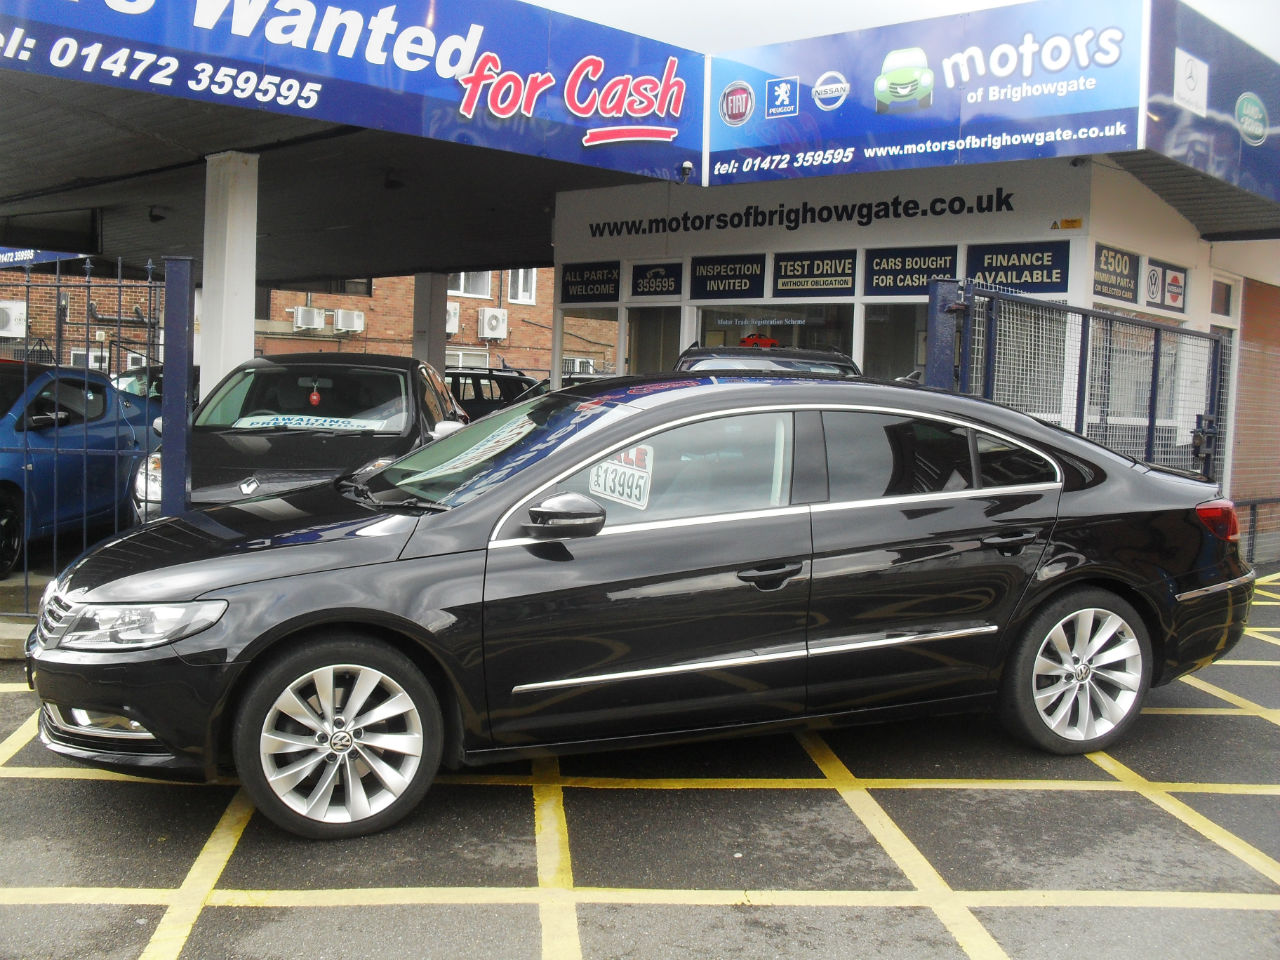 Volkswagen Cc 2.0 TDI BlueMotion Tech GT 4dr Coupe Diesel Black Met at Motors of Brighowgate Grimsby